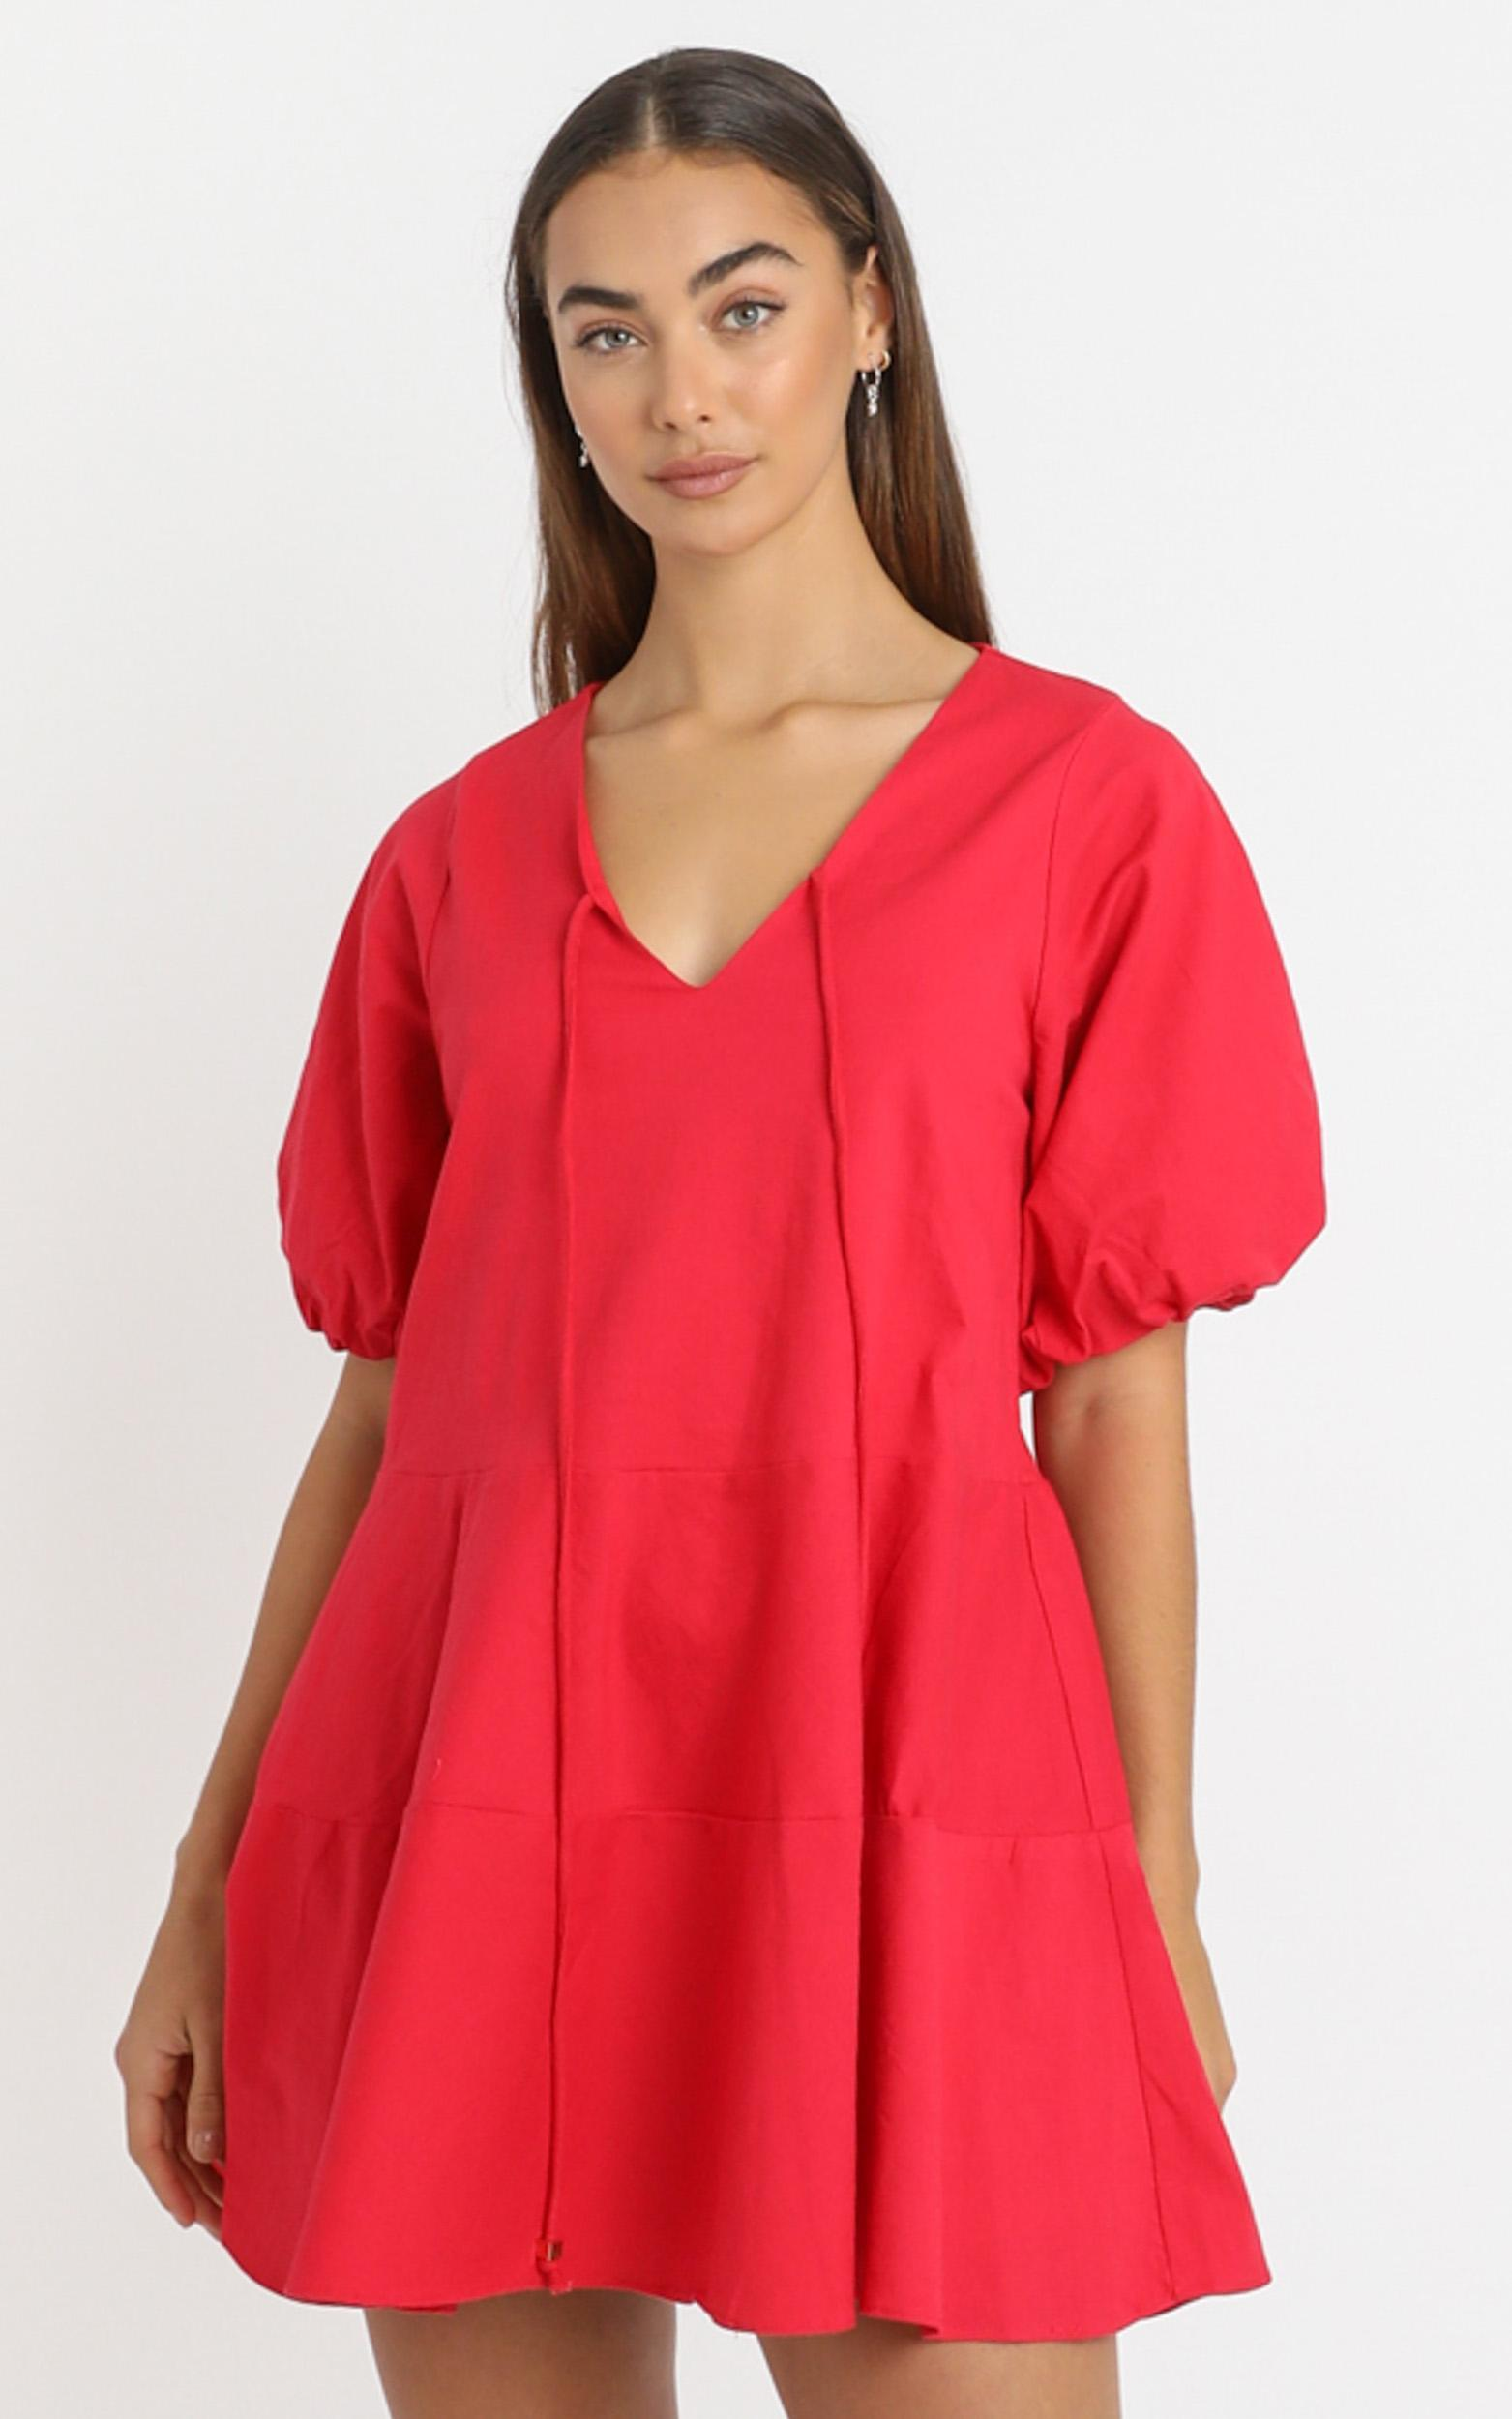 Krizza Mini Dress in red linen look - 6 (XS), RED1, hi-res image number null